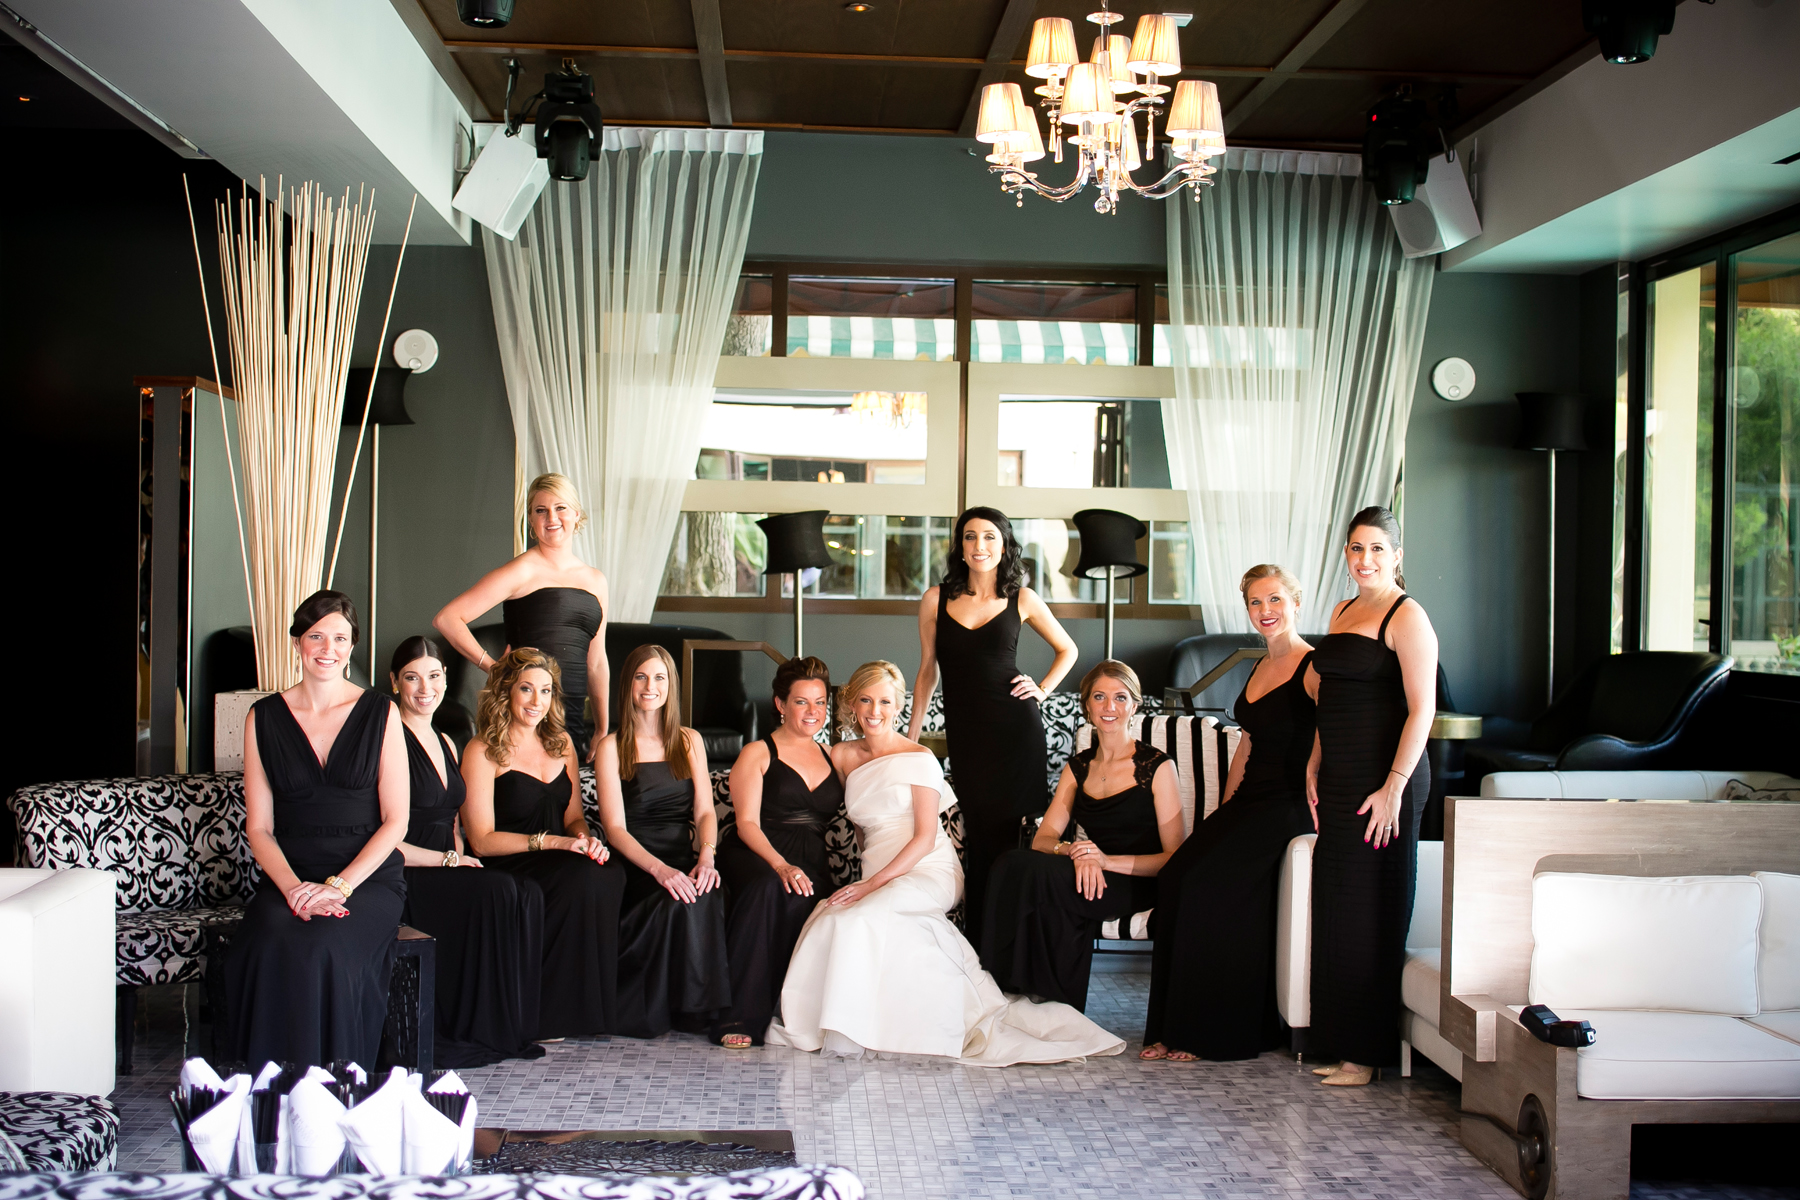 And the bridesmaids wore black.  Marci allowed each girl to select their own black dress, guaranteeing that they all looked stunning.  Wedding Venue:  Bellagio Las Vegas.   Location:  Hyde Bellagio .  Photo by  www.ronmiller.com .  Las Vegas Wedding Planner:  Andrea Eppolito Events .